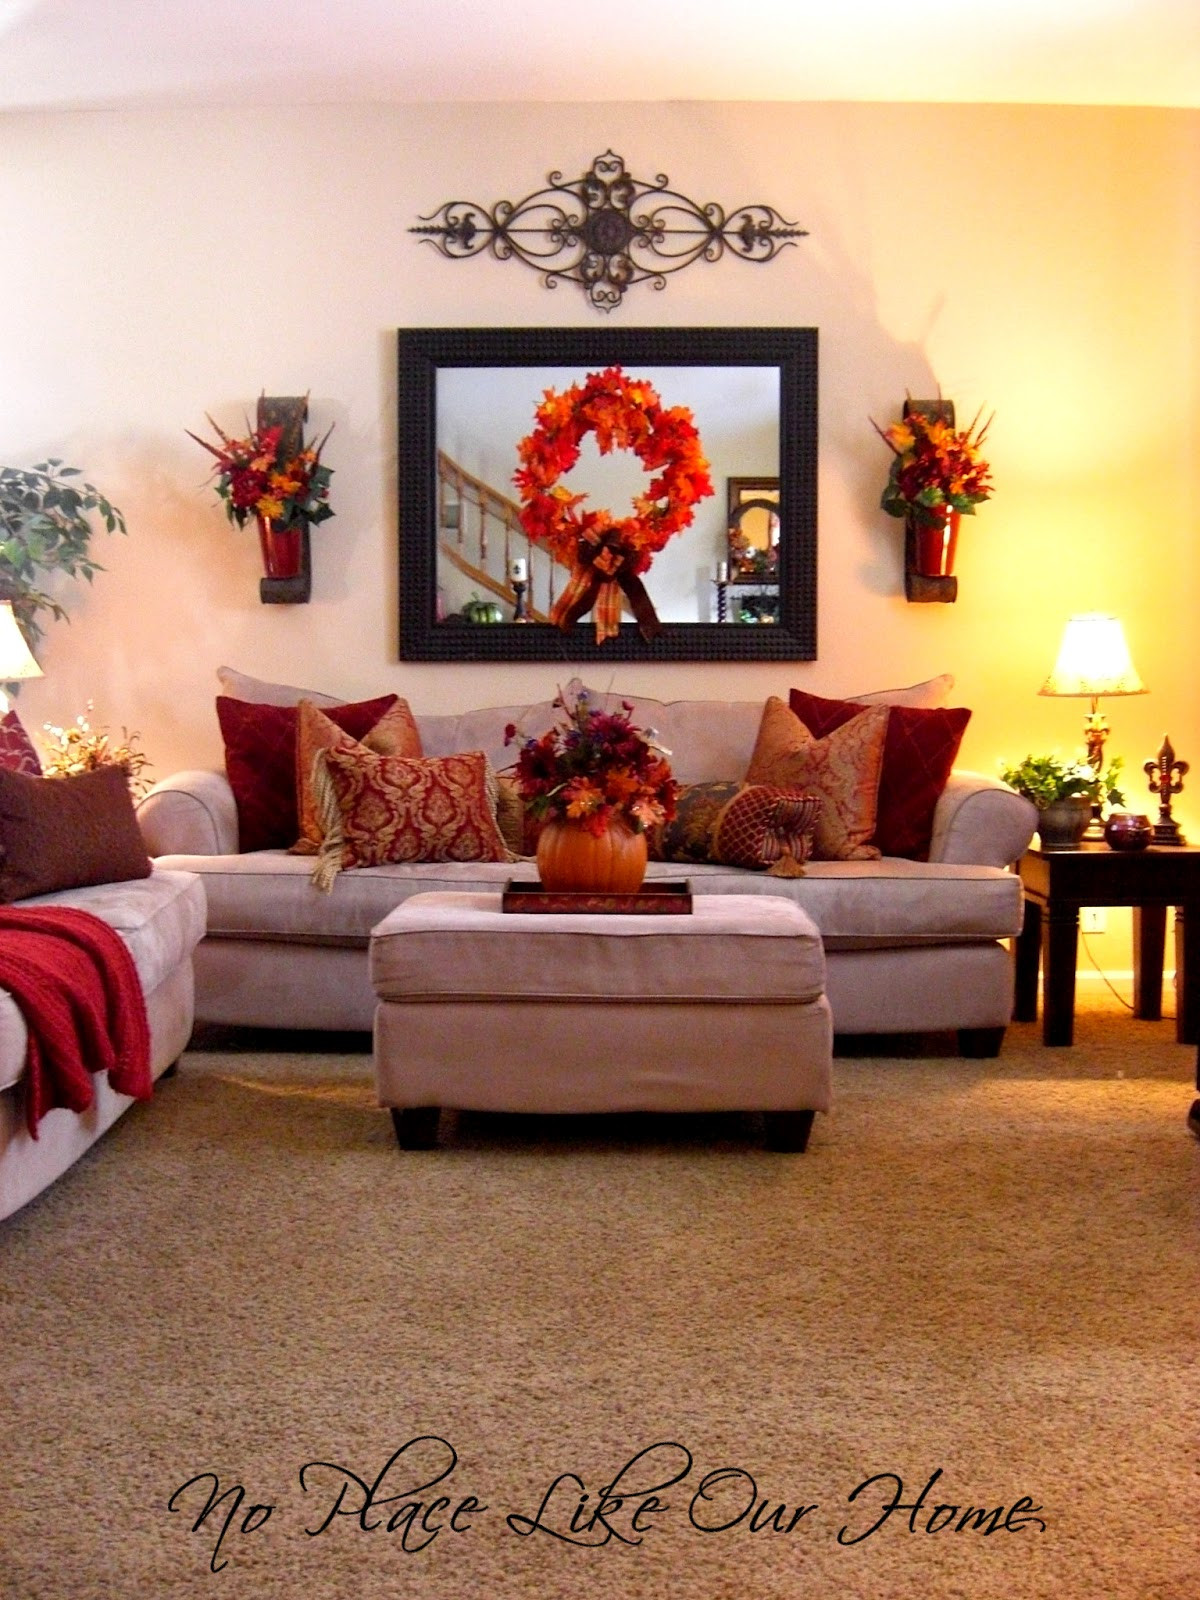 Best ideas about Decor For Living Room . Save or Pin No Place Like Our Home Front Living Room Fall Tour 2012 Now.